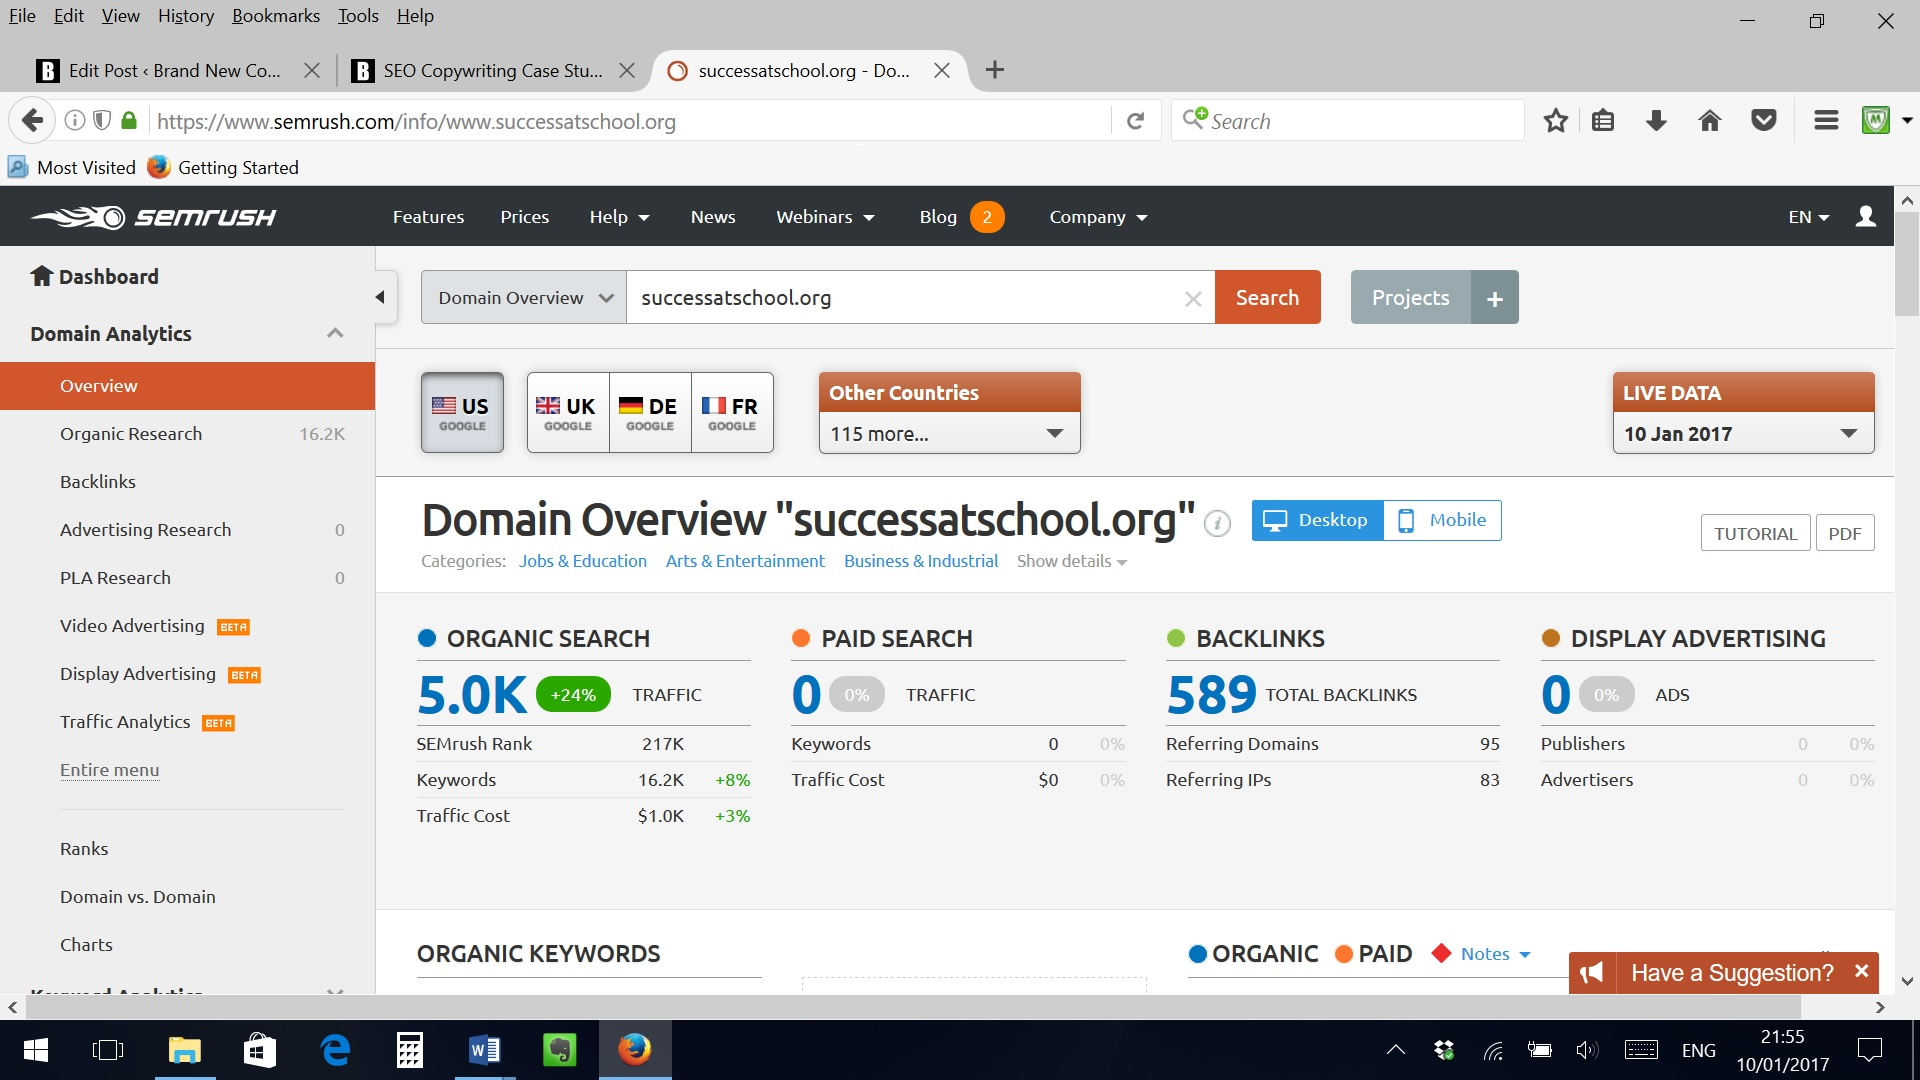 Screenshot of Success at School SemRush profile